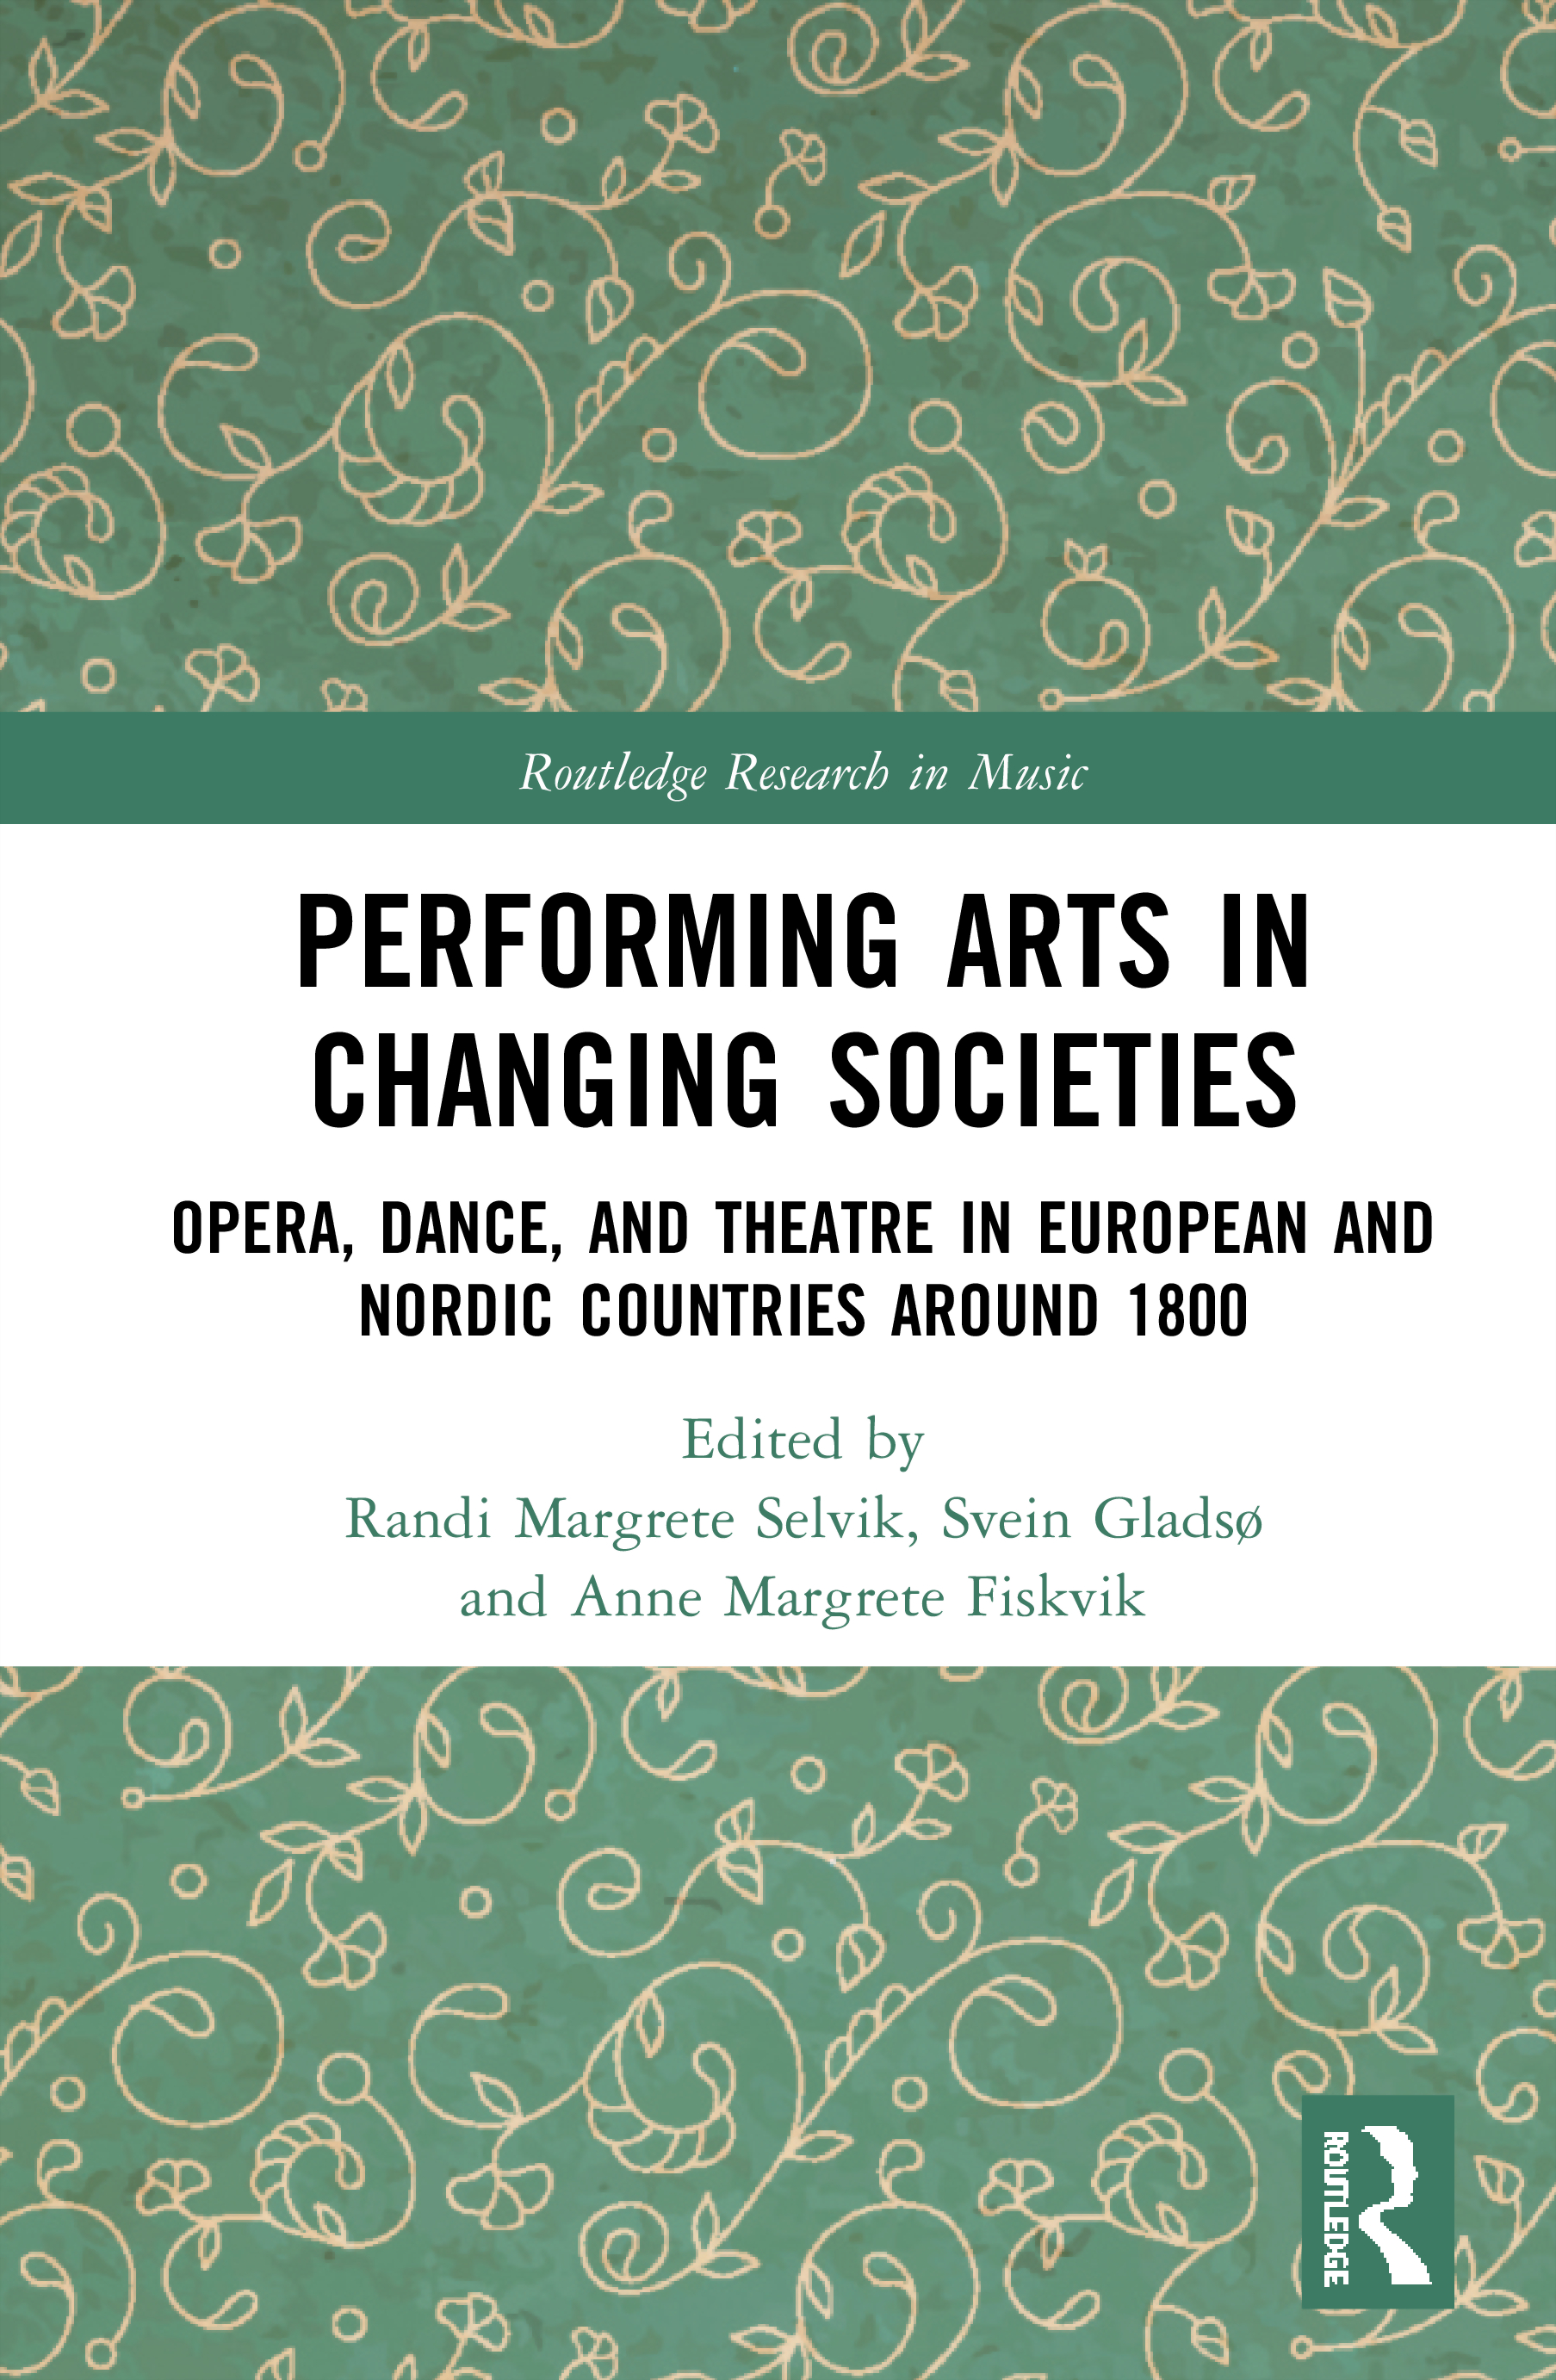 Performing Arts in Changing Societies: Opera, Dance, and Theatre in European and Nordic Countries around 1800, 1st Edition (Hardback) book cover